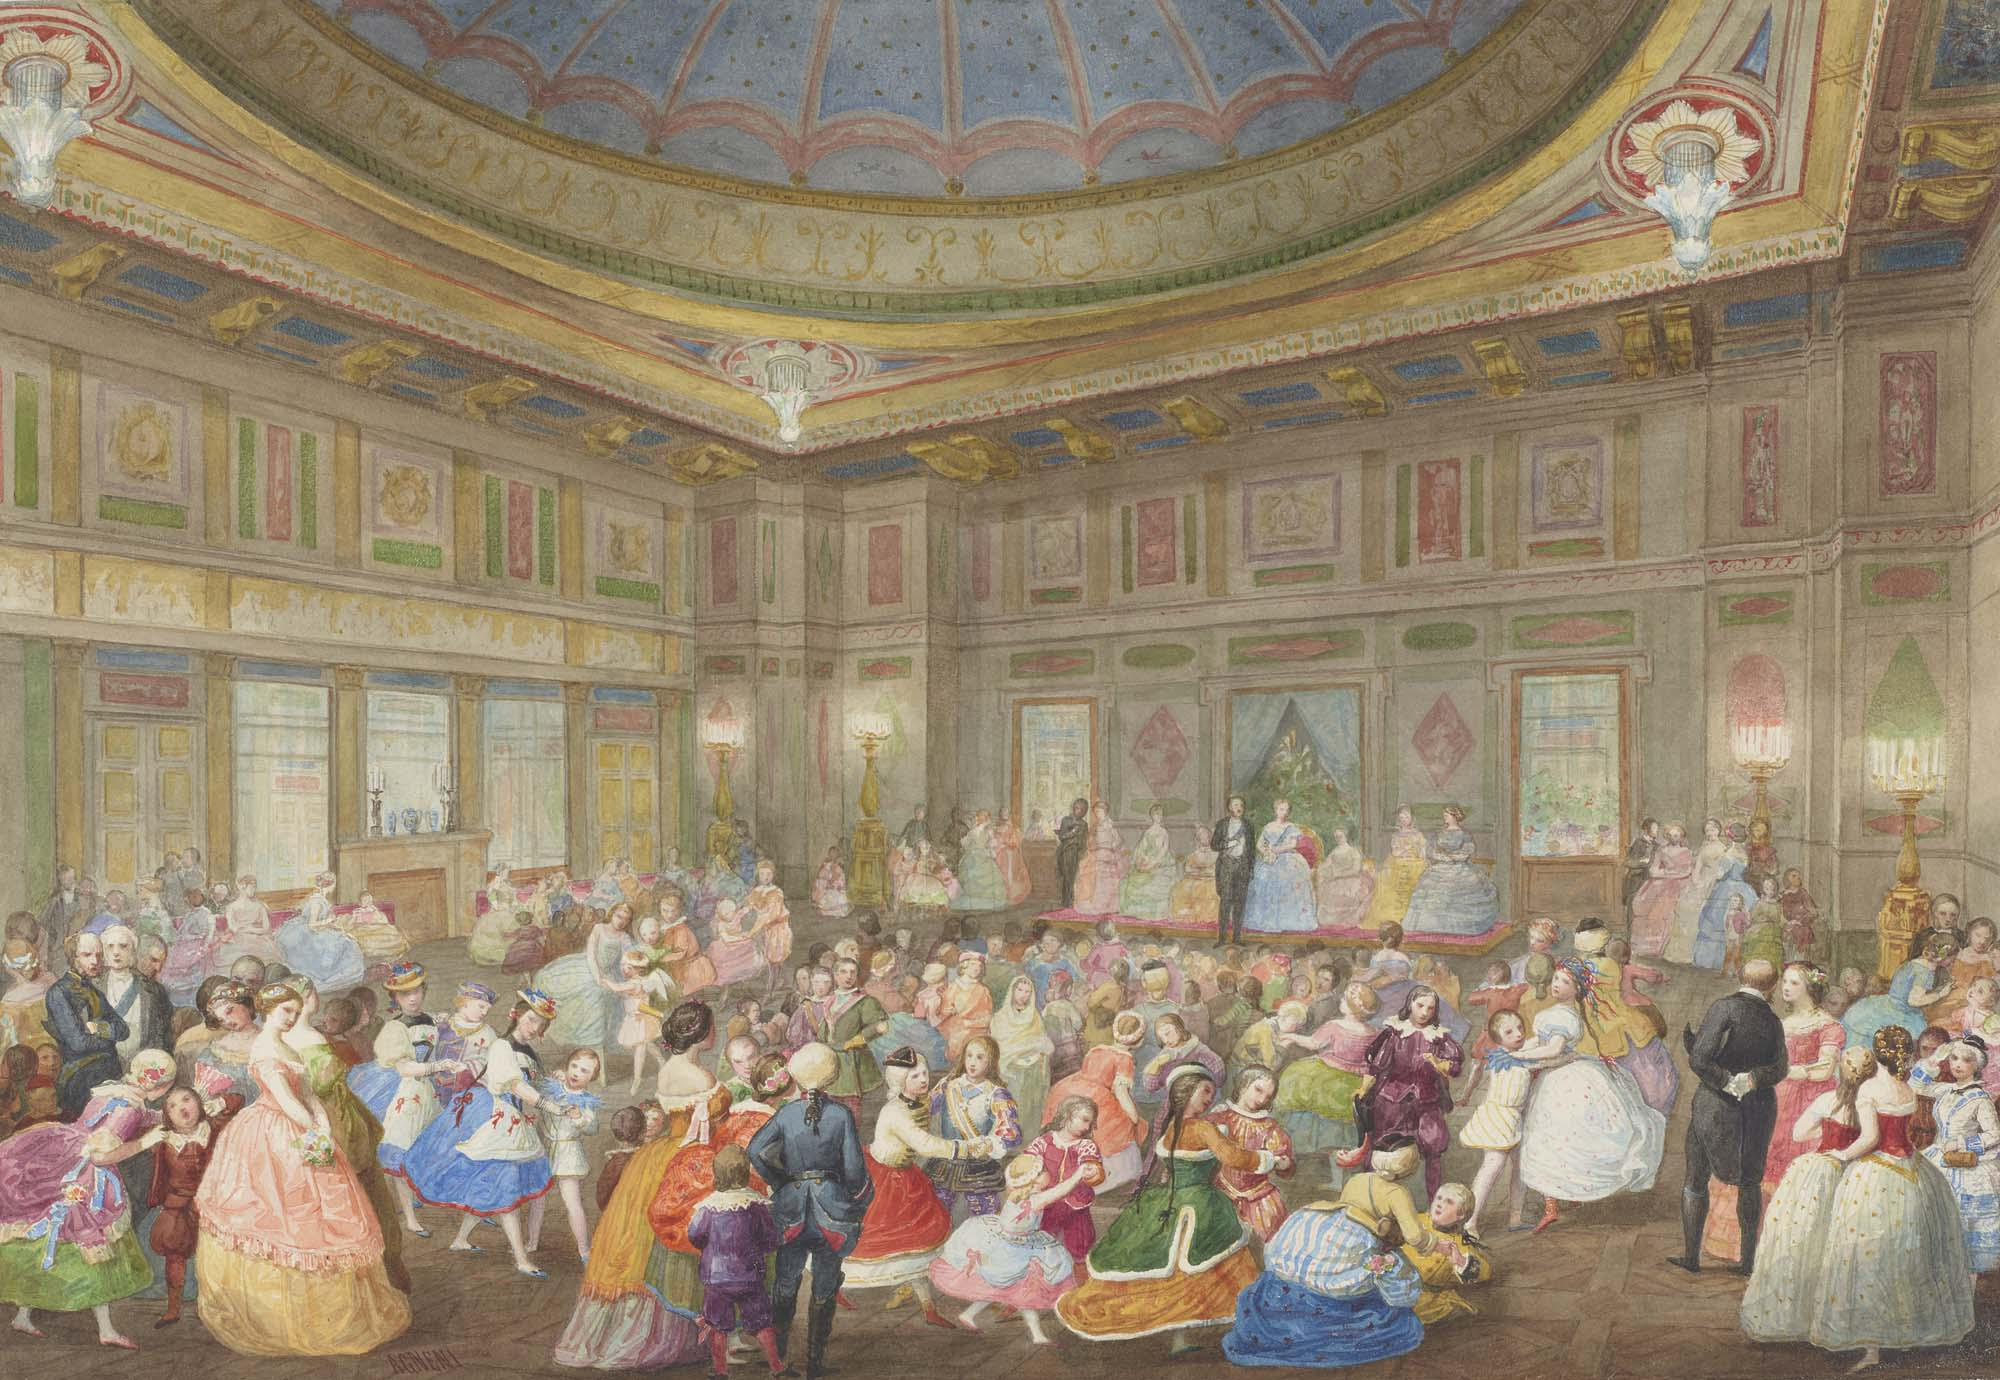 a photo of grandly dressed Victorian children playing in a large ballroom